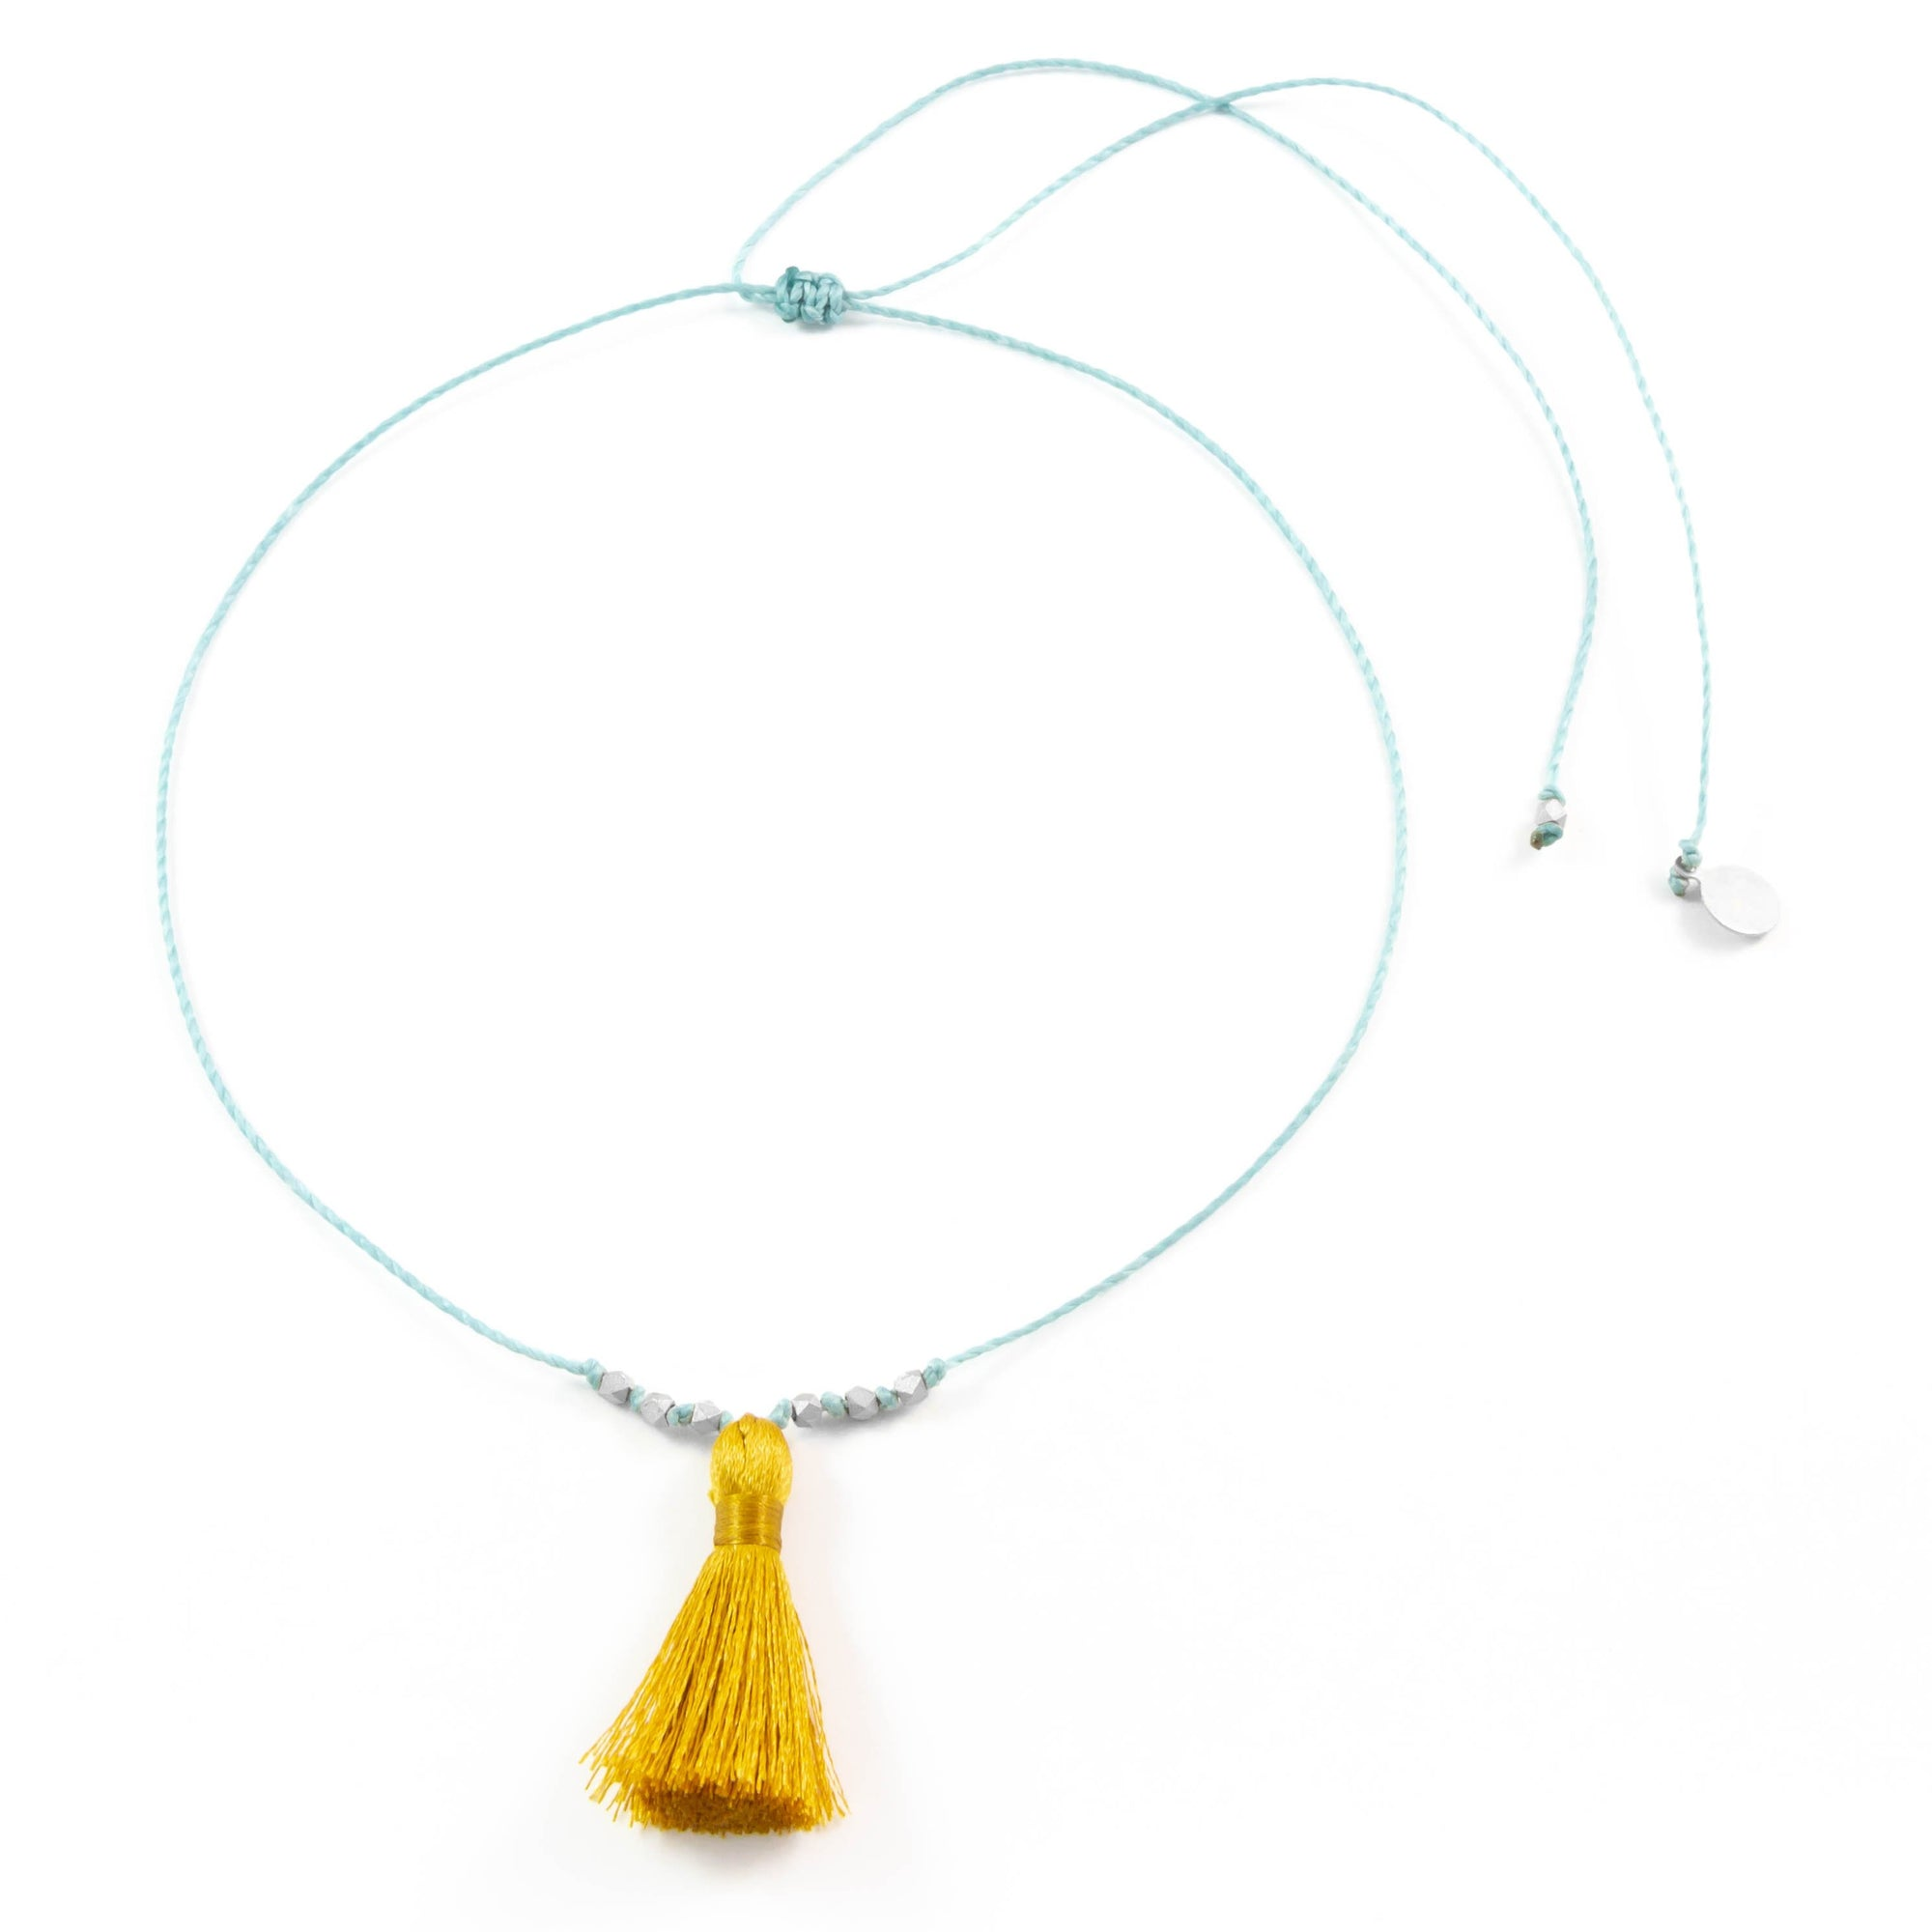 Stormy Ocean w/ Mustard Tassel On a String Necklace in Silver